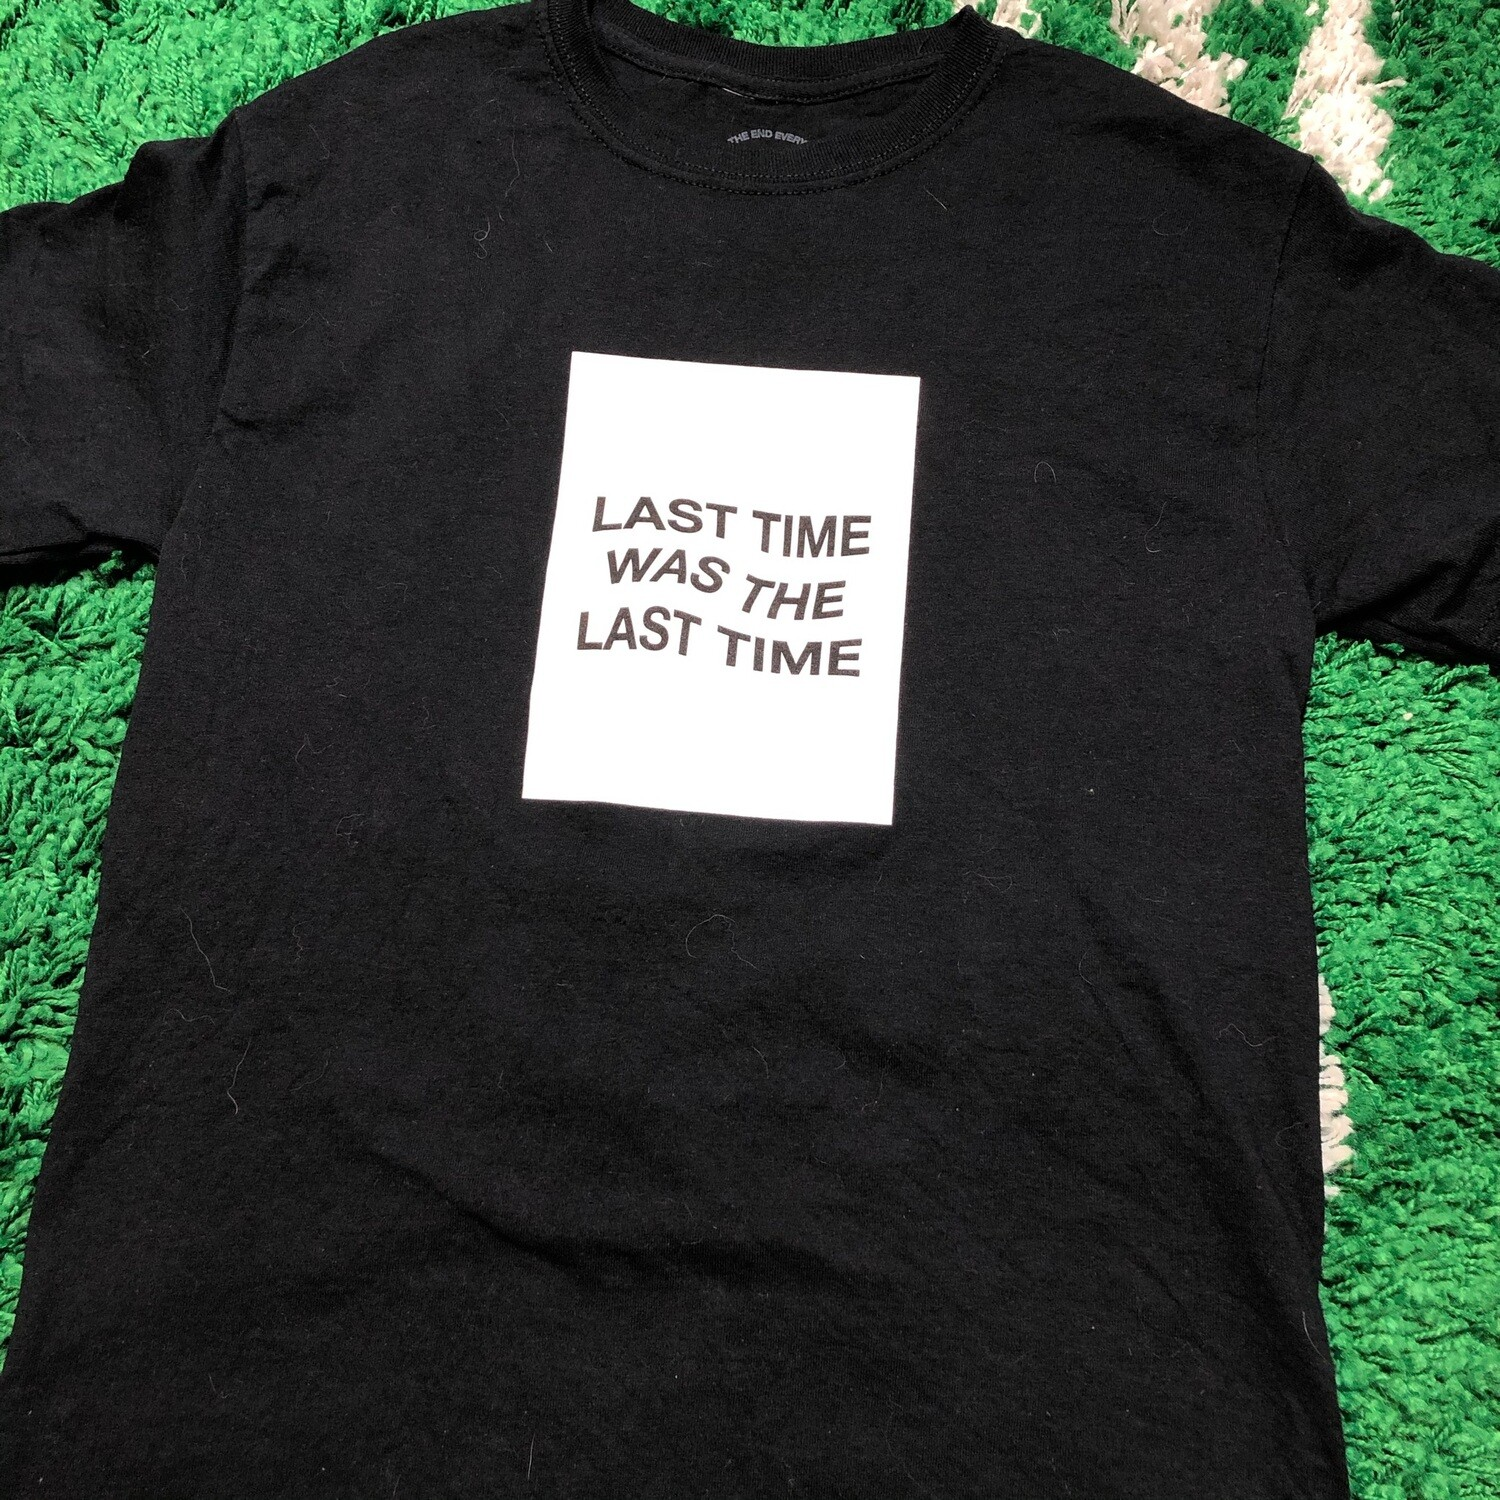 """Anti Social Social Club """"Last time was the Last Time"""" Shirt Size Small"""